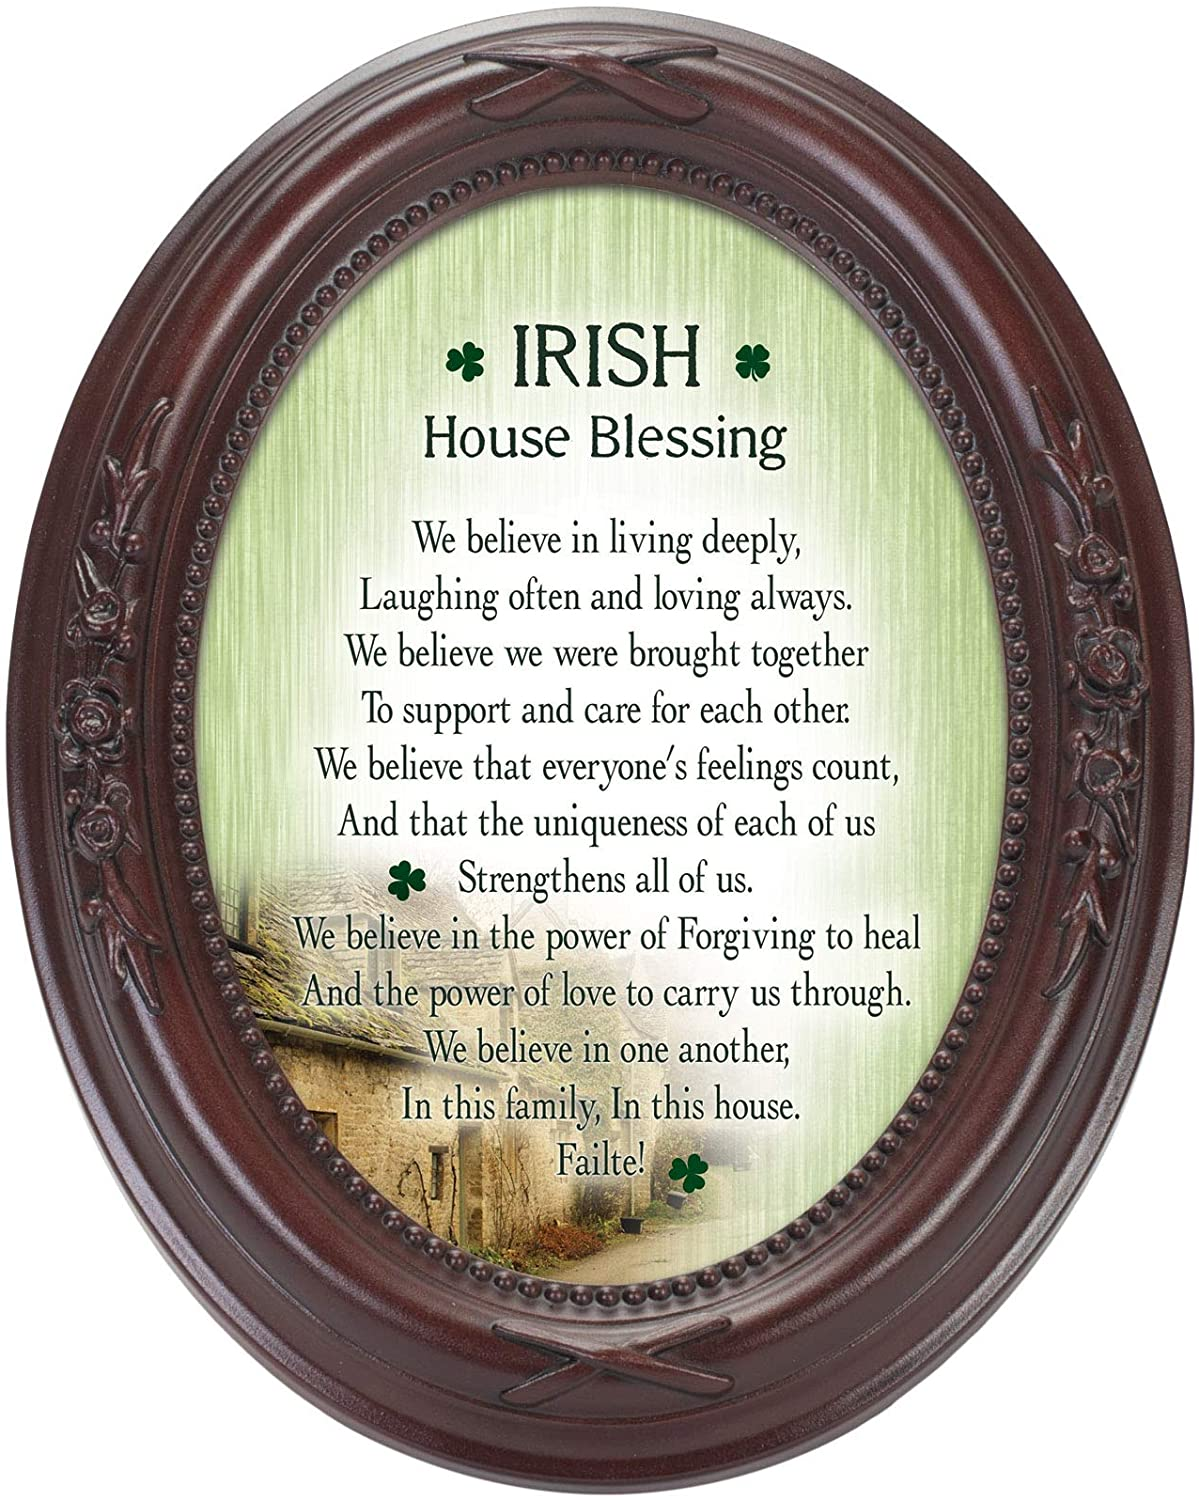 Cottage Garden Irish House Blessings Failte! Mahogany Finish Floral 5 x 7 Oval Table and Wall Photo Frame